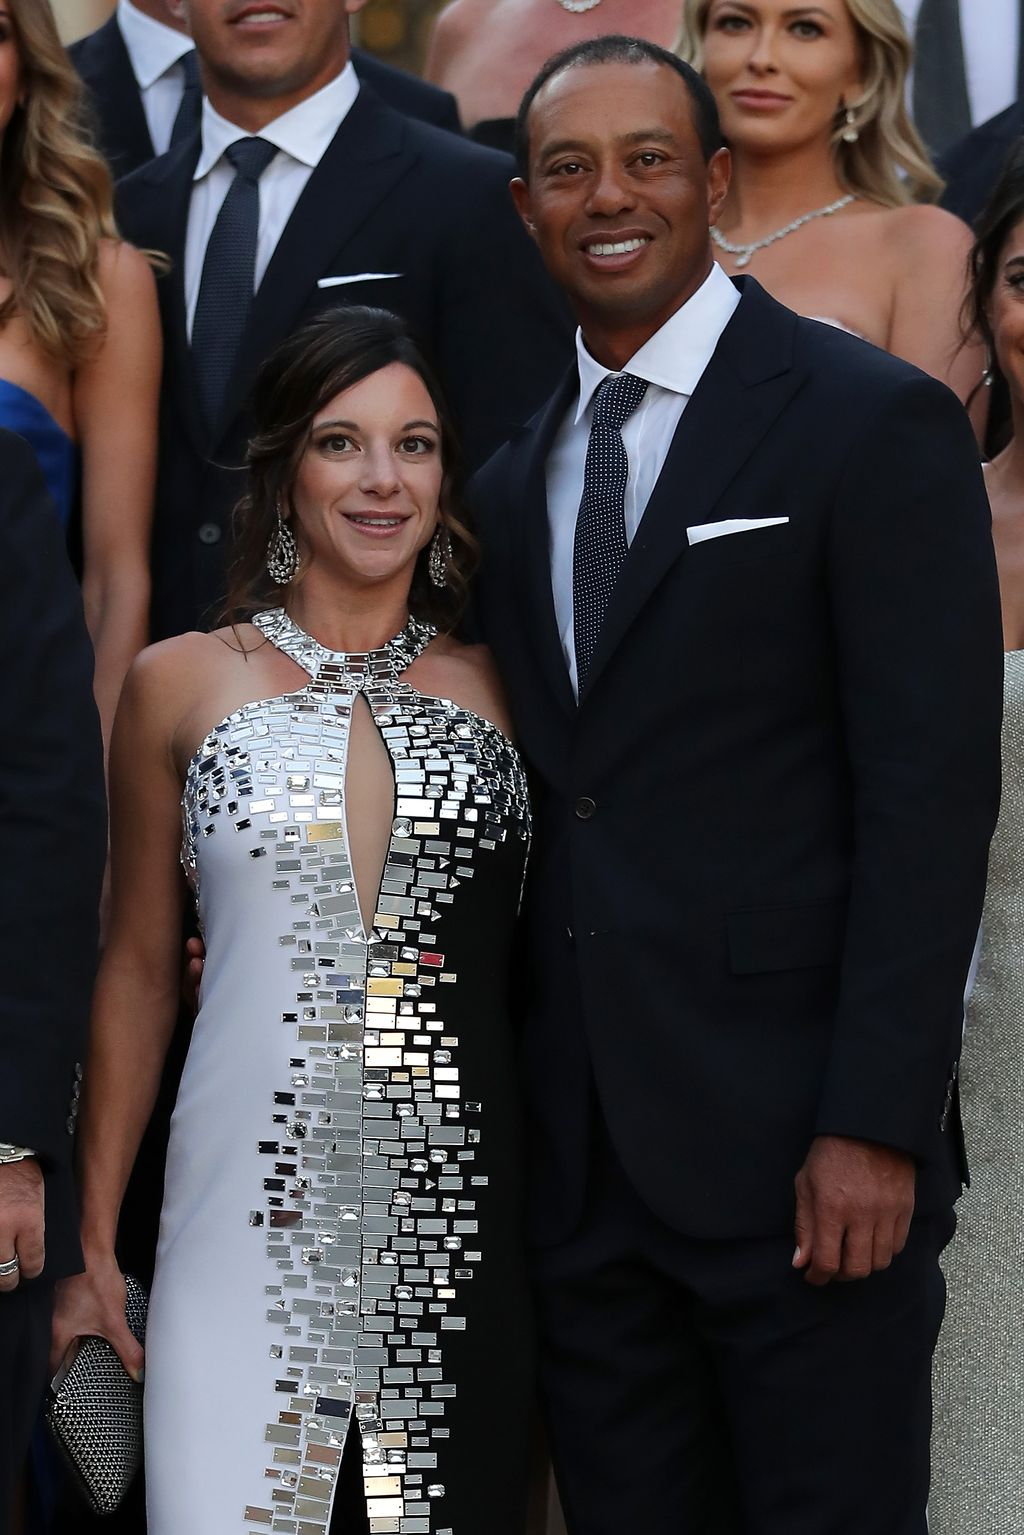 MELBOURNE, AUSTRALIA - DECEMBER 06:  Tiger Woods and his girlfriend Erica Herman look on during a Presidents Cup media opportunity at the Yarra Promenade on December 5, 2018 in Melbourne, Australia. The Presidents Cup 2019 will be held on December 9-15, 2019, when it returns to the prestigious Royal Melbourne Golf Club in Australia.  (Photo by Scott Barbour/Getty Images)